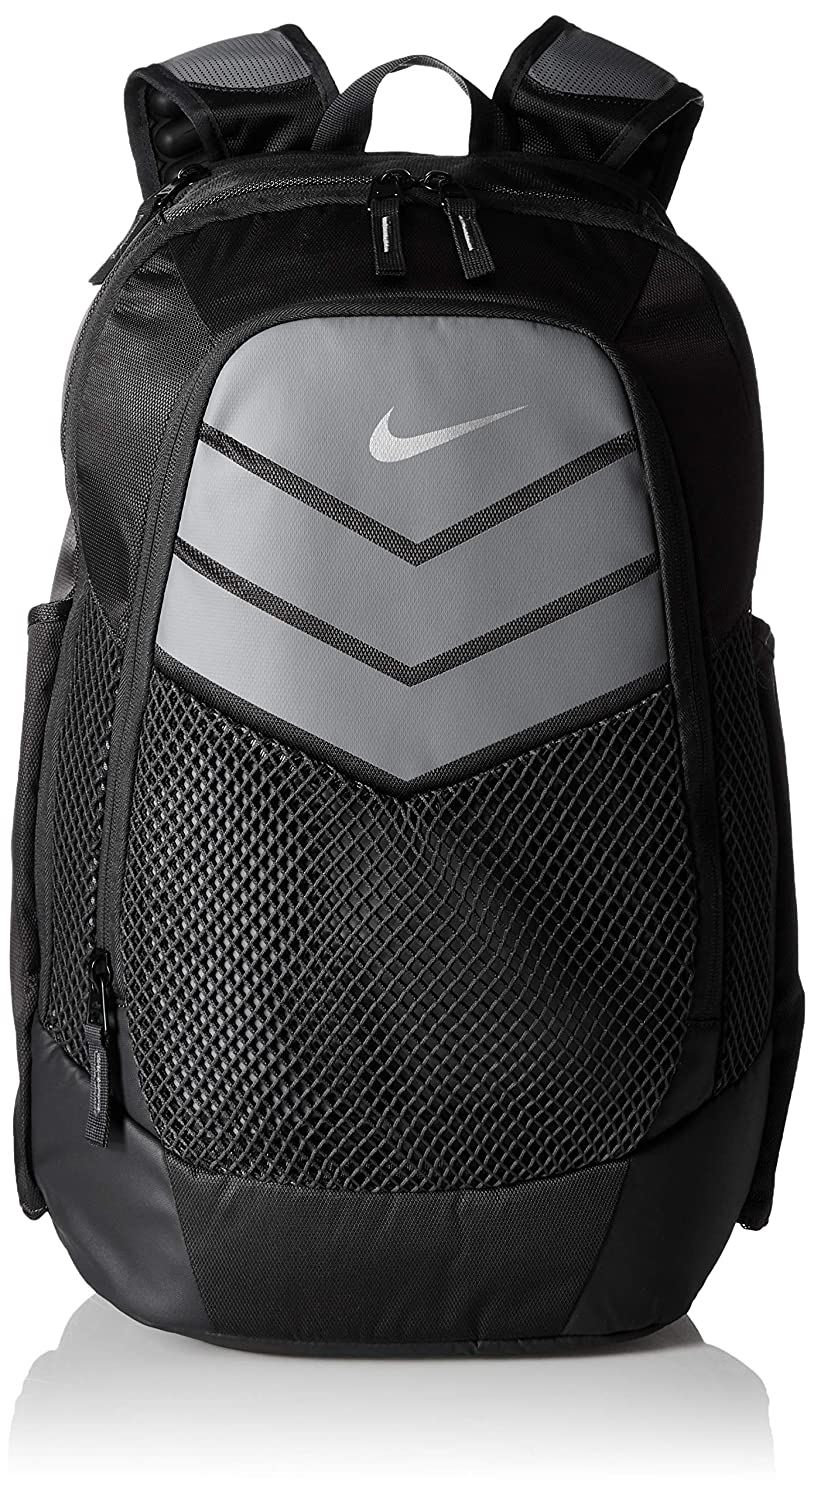 Nike School Backpack